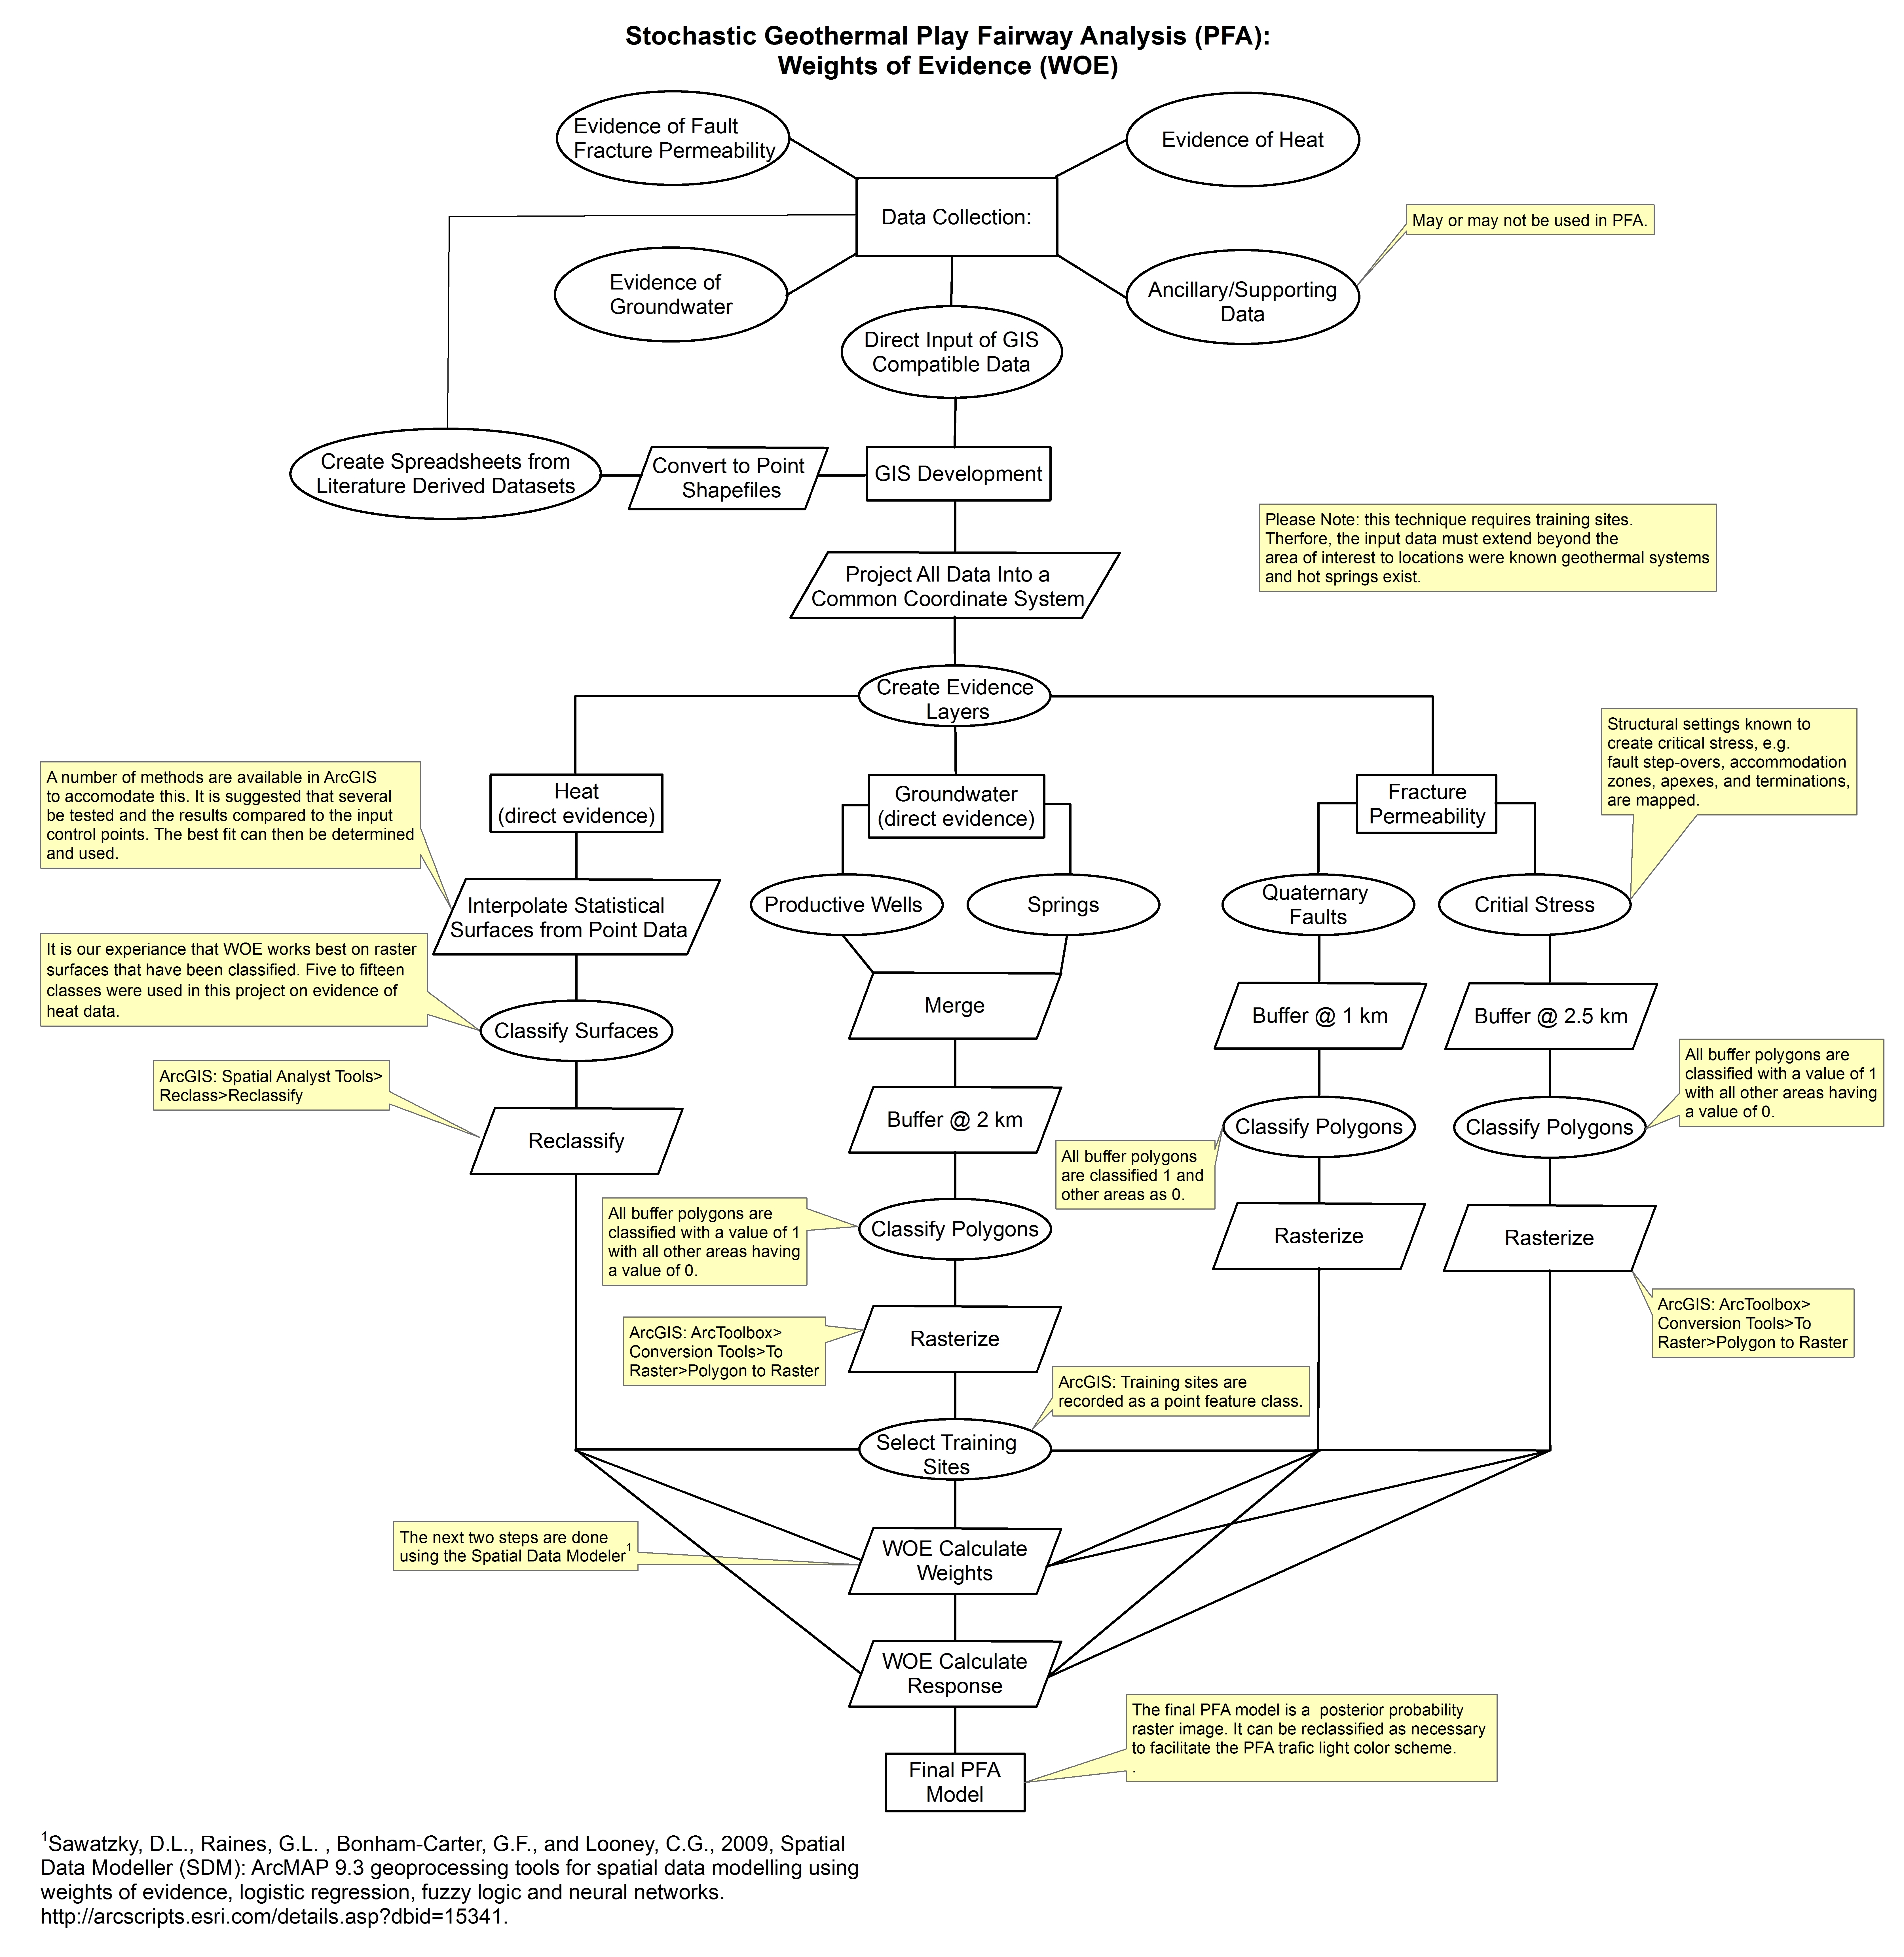 Tularosa basin play fairway analysis methodology flow charts data and resources ccuart Choice Image